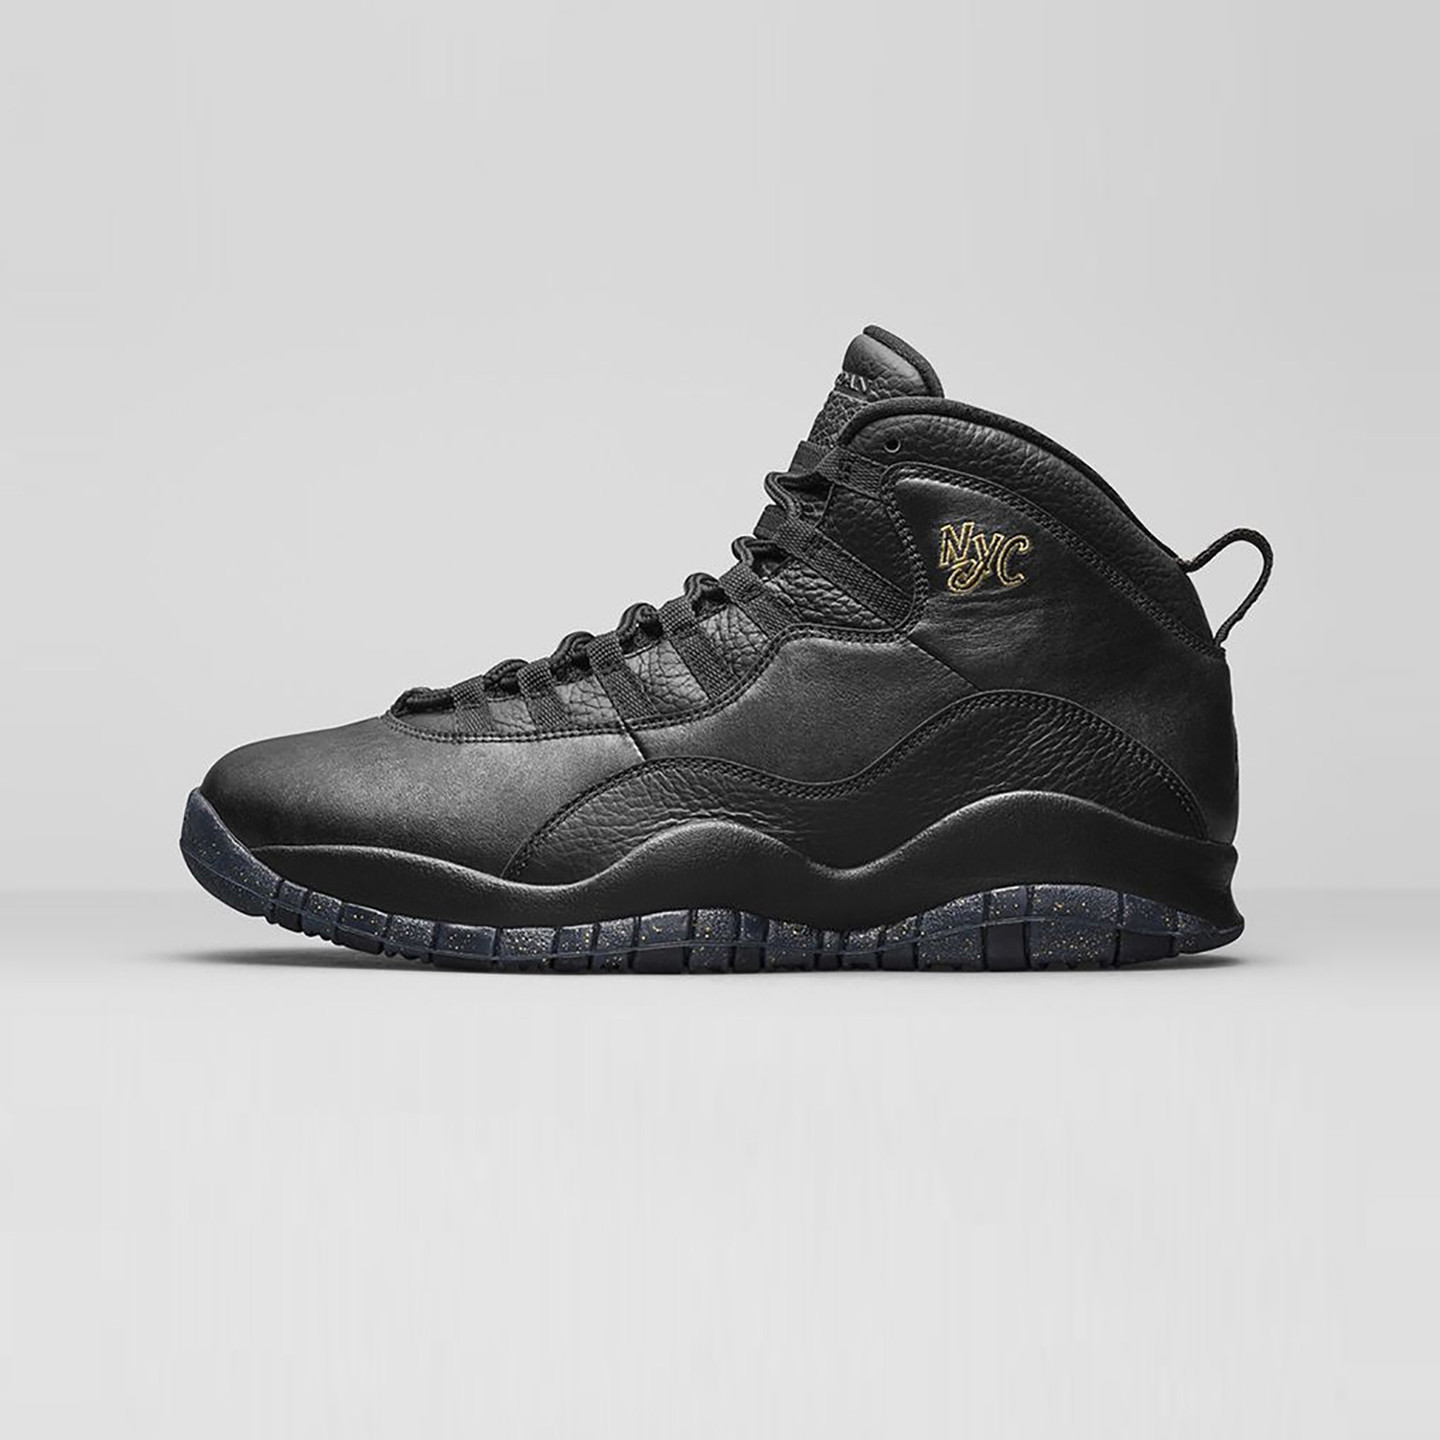 Jordan Air Jordan 10 Retro GS 'NYC' Black / Metallic Gold 310806-012-38